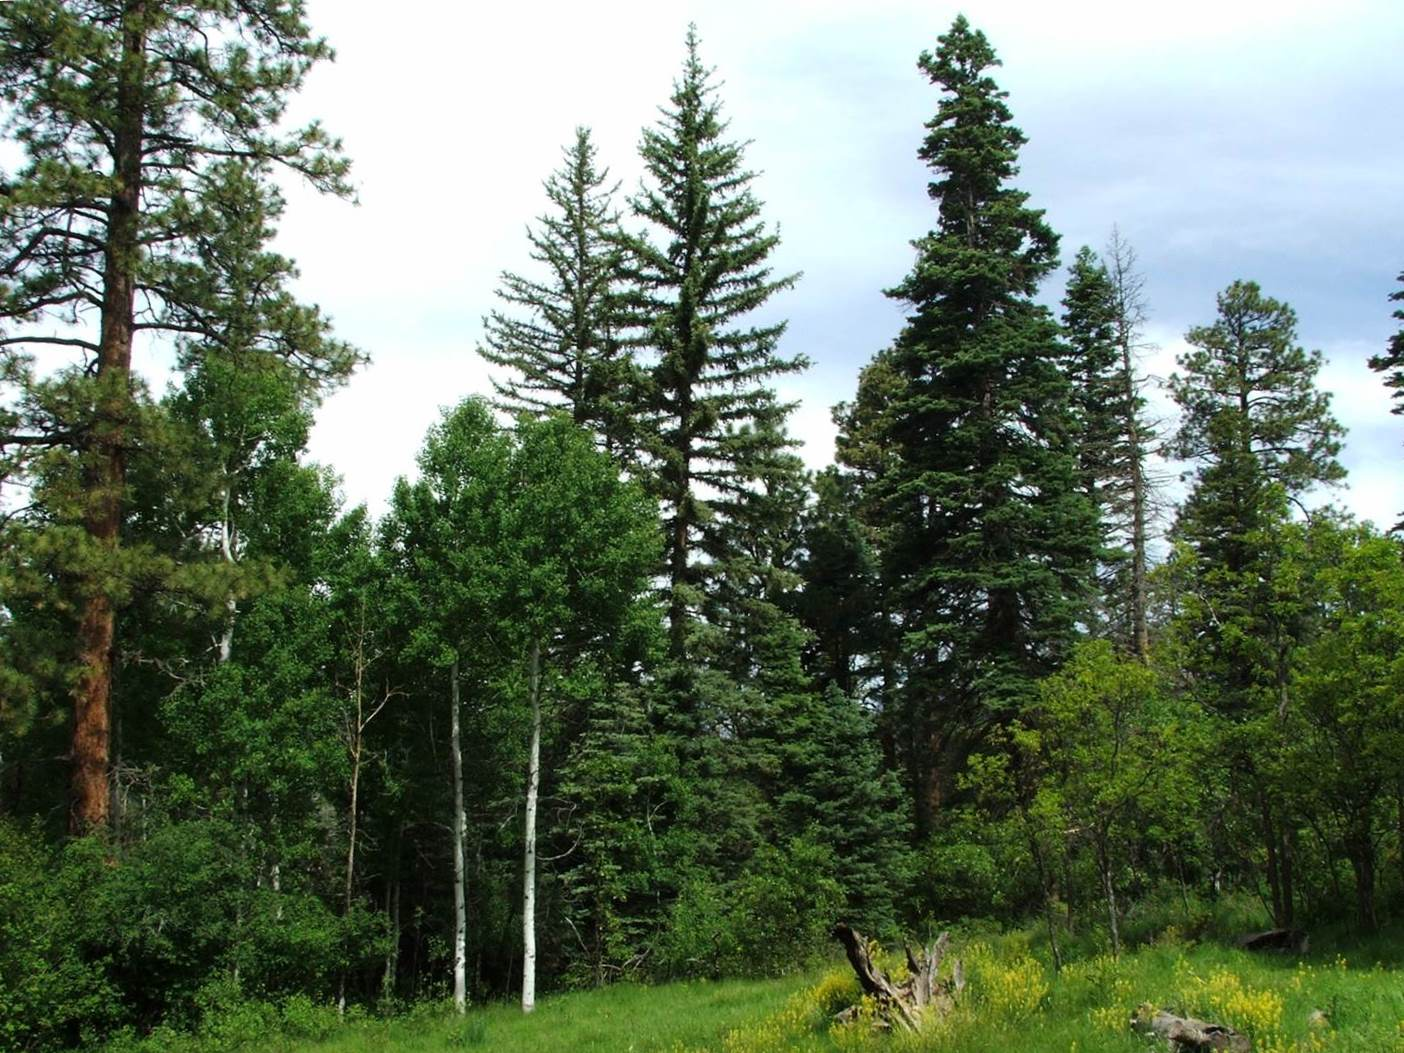 The San Juan National Forest ASCC site is a dry mixed-conifer forest type located in southwest Colorado.